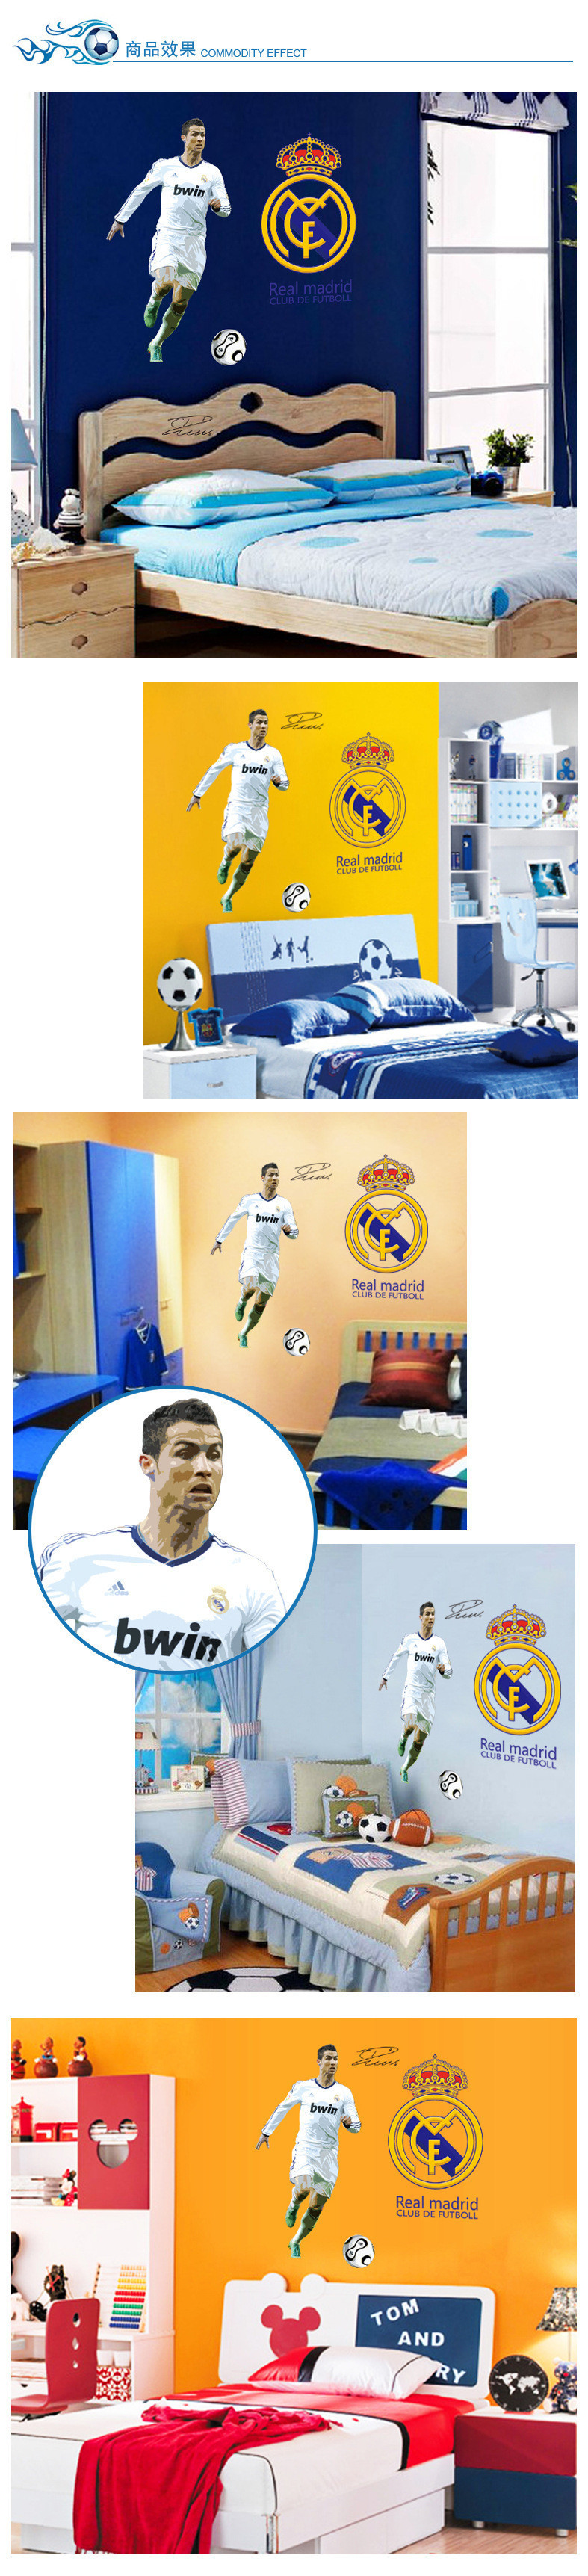 Grand sticker geant mural 110x90 christiano ronaldo cr7 for Deco avec miroir mural